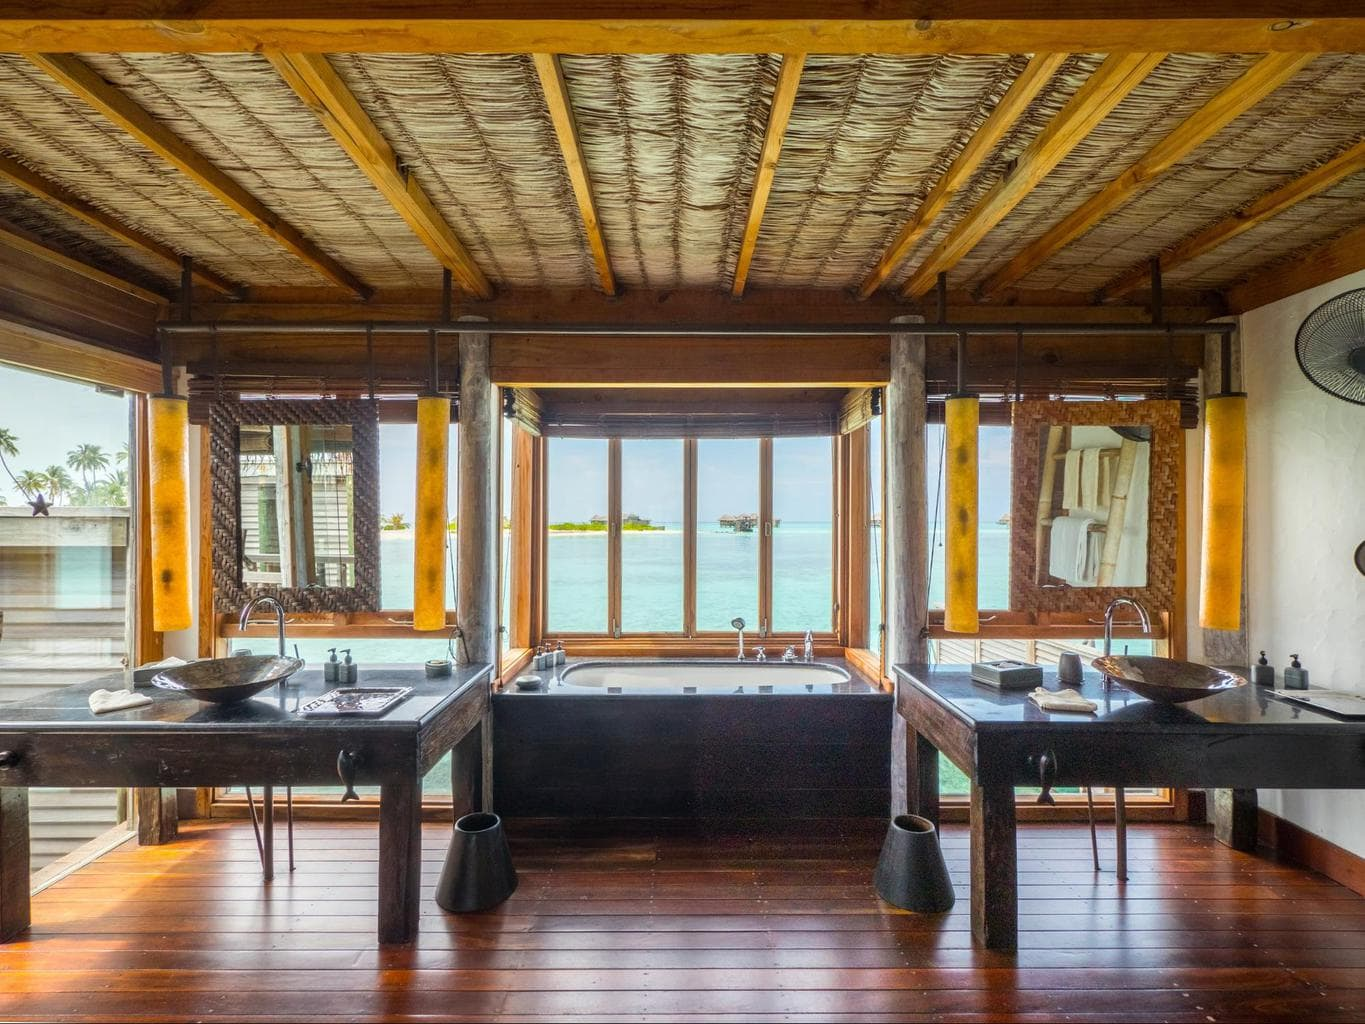 Bathroom at Gili Lankanfushi 01